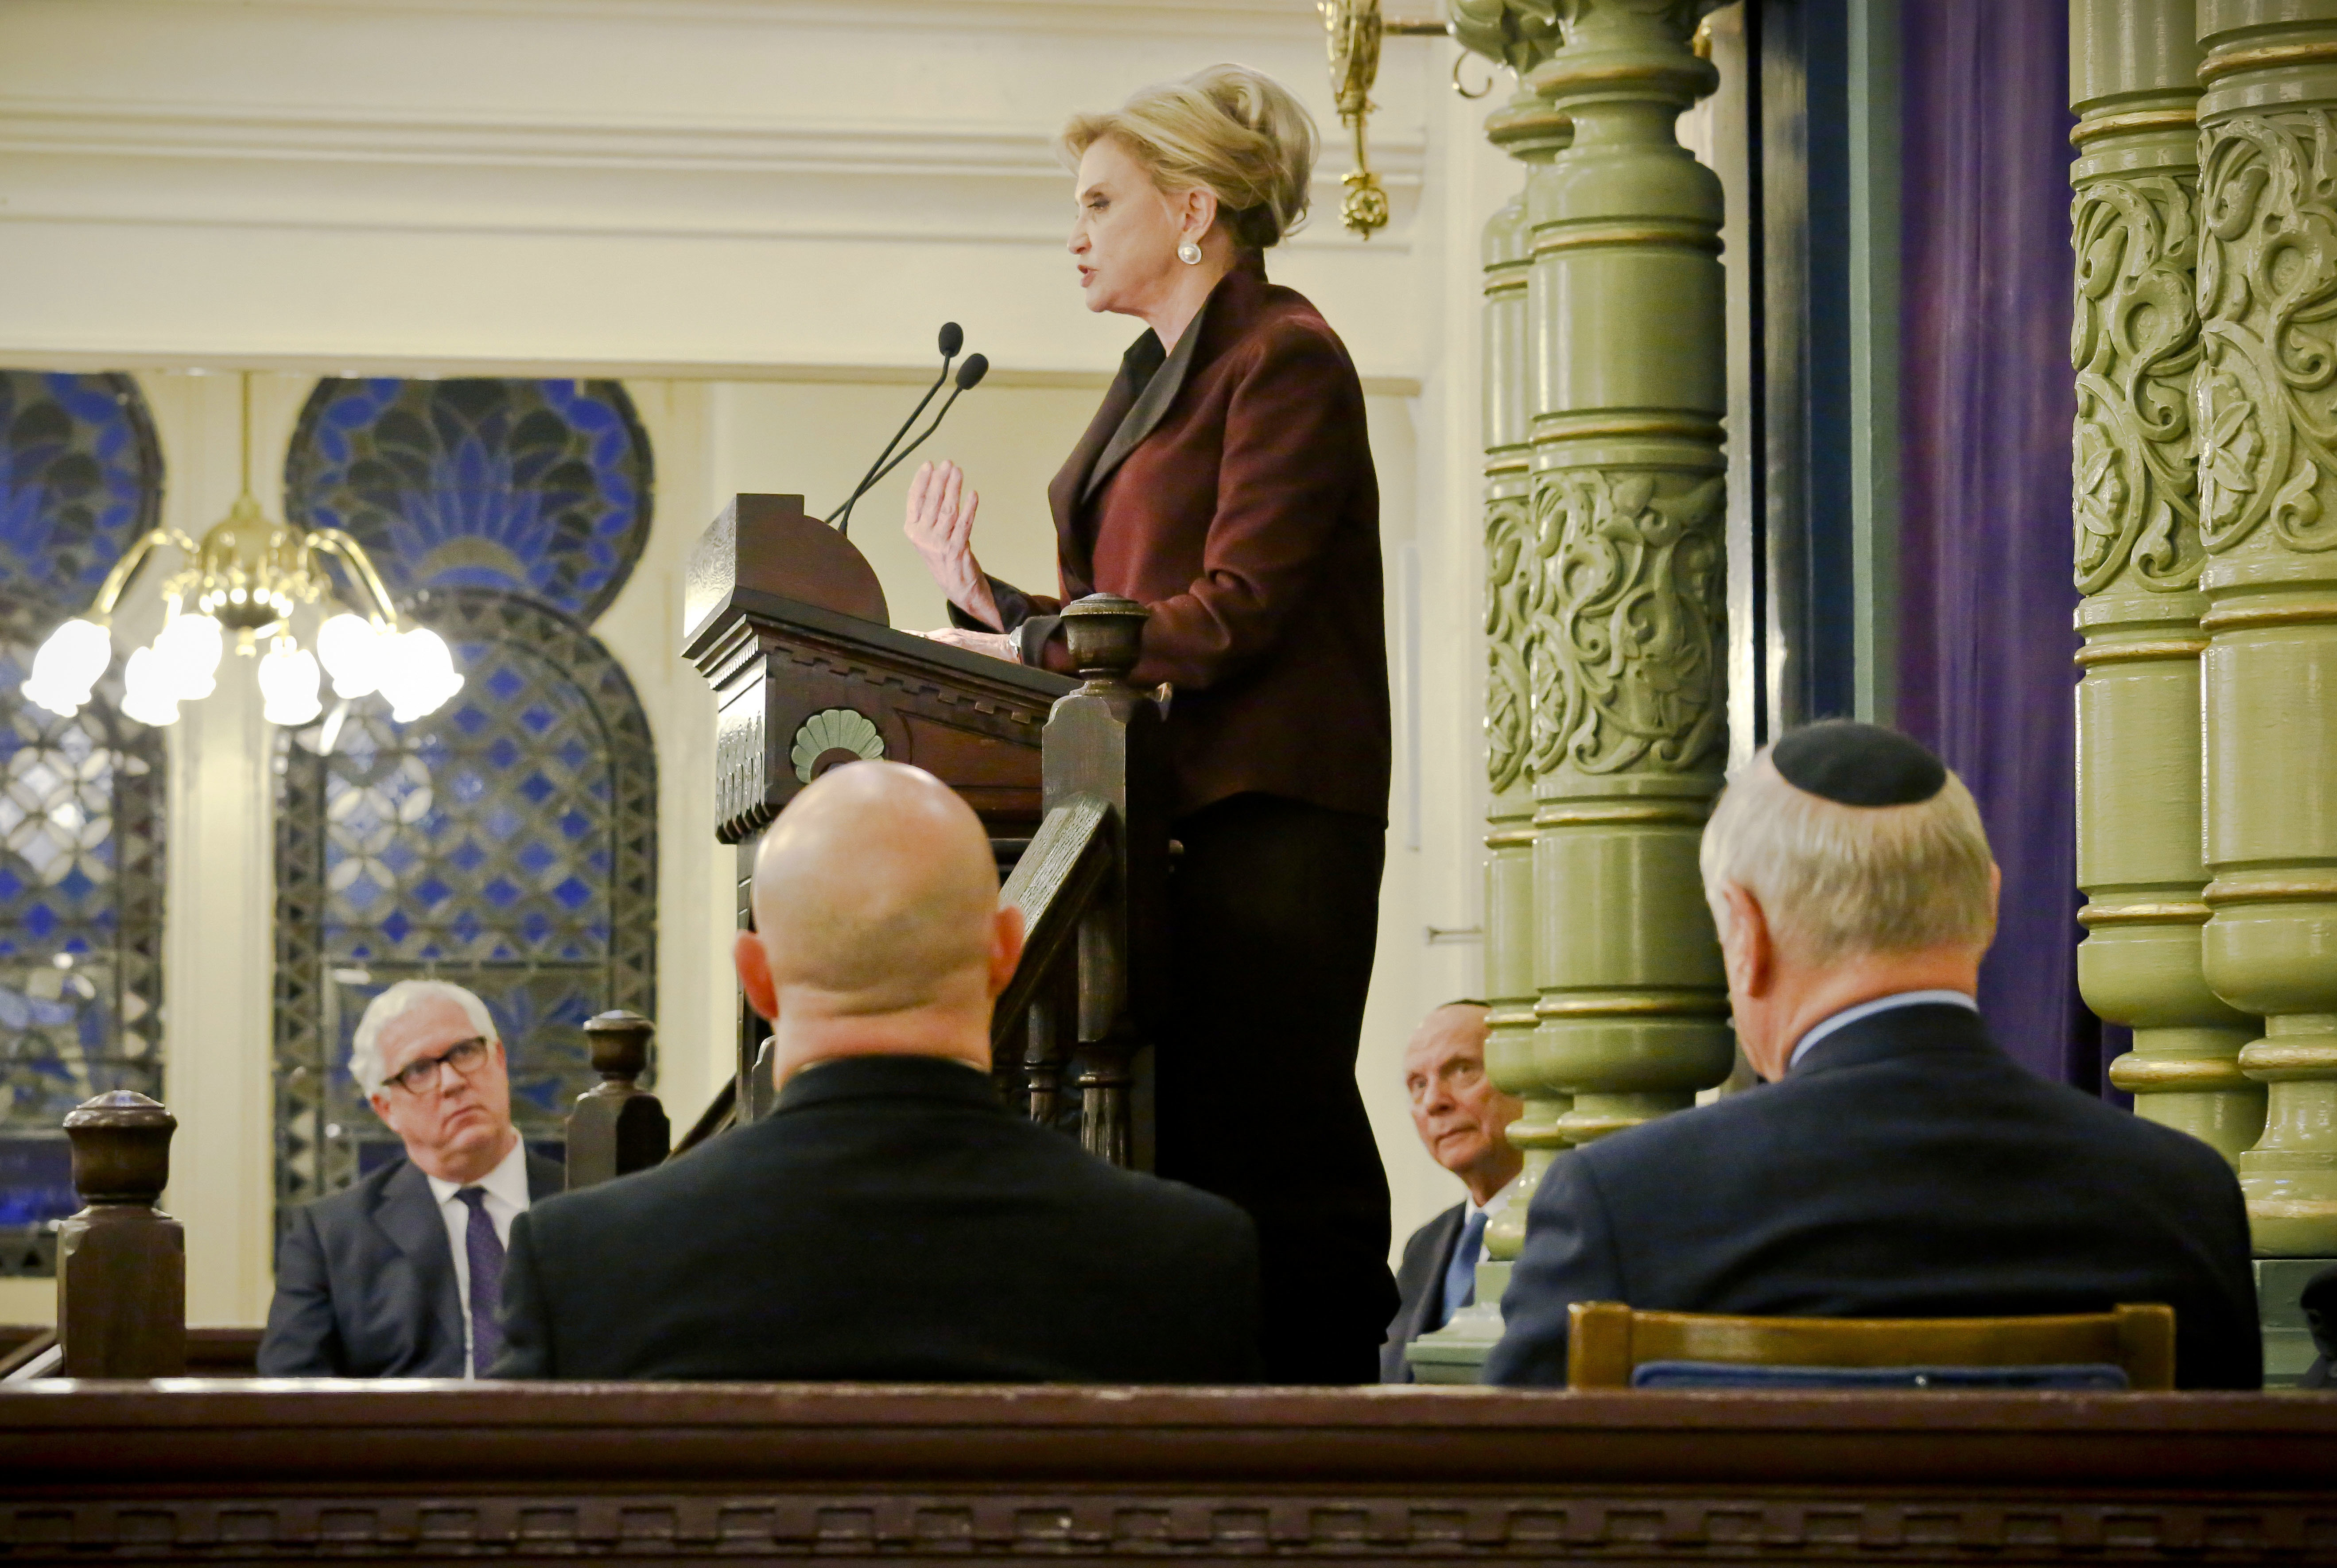 Congresswoman Carolyn Maloney (C) member of Congress's bipartisan task force combating anti-Semitism, speaks during a news conference addressing bomb treats against Jewish organizations and vandalism at Jewish cemeteries in New York on March 3, 2017. (AP Photo/Bebeto Matthews)